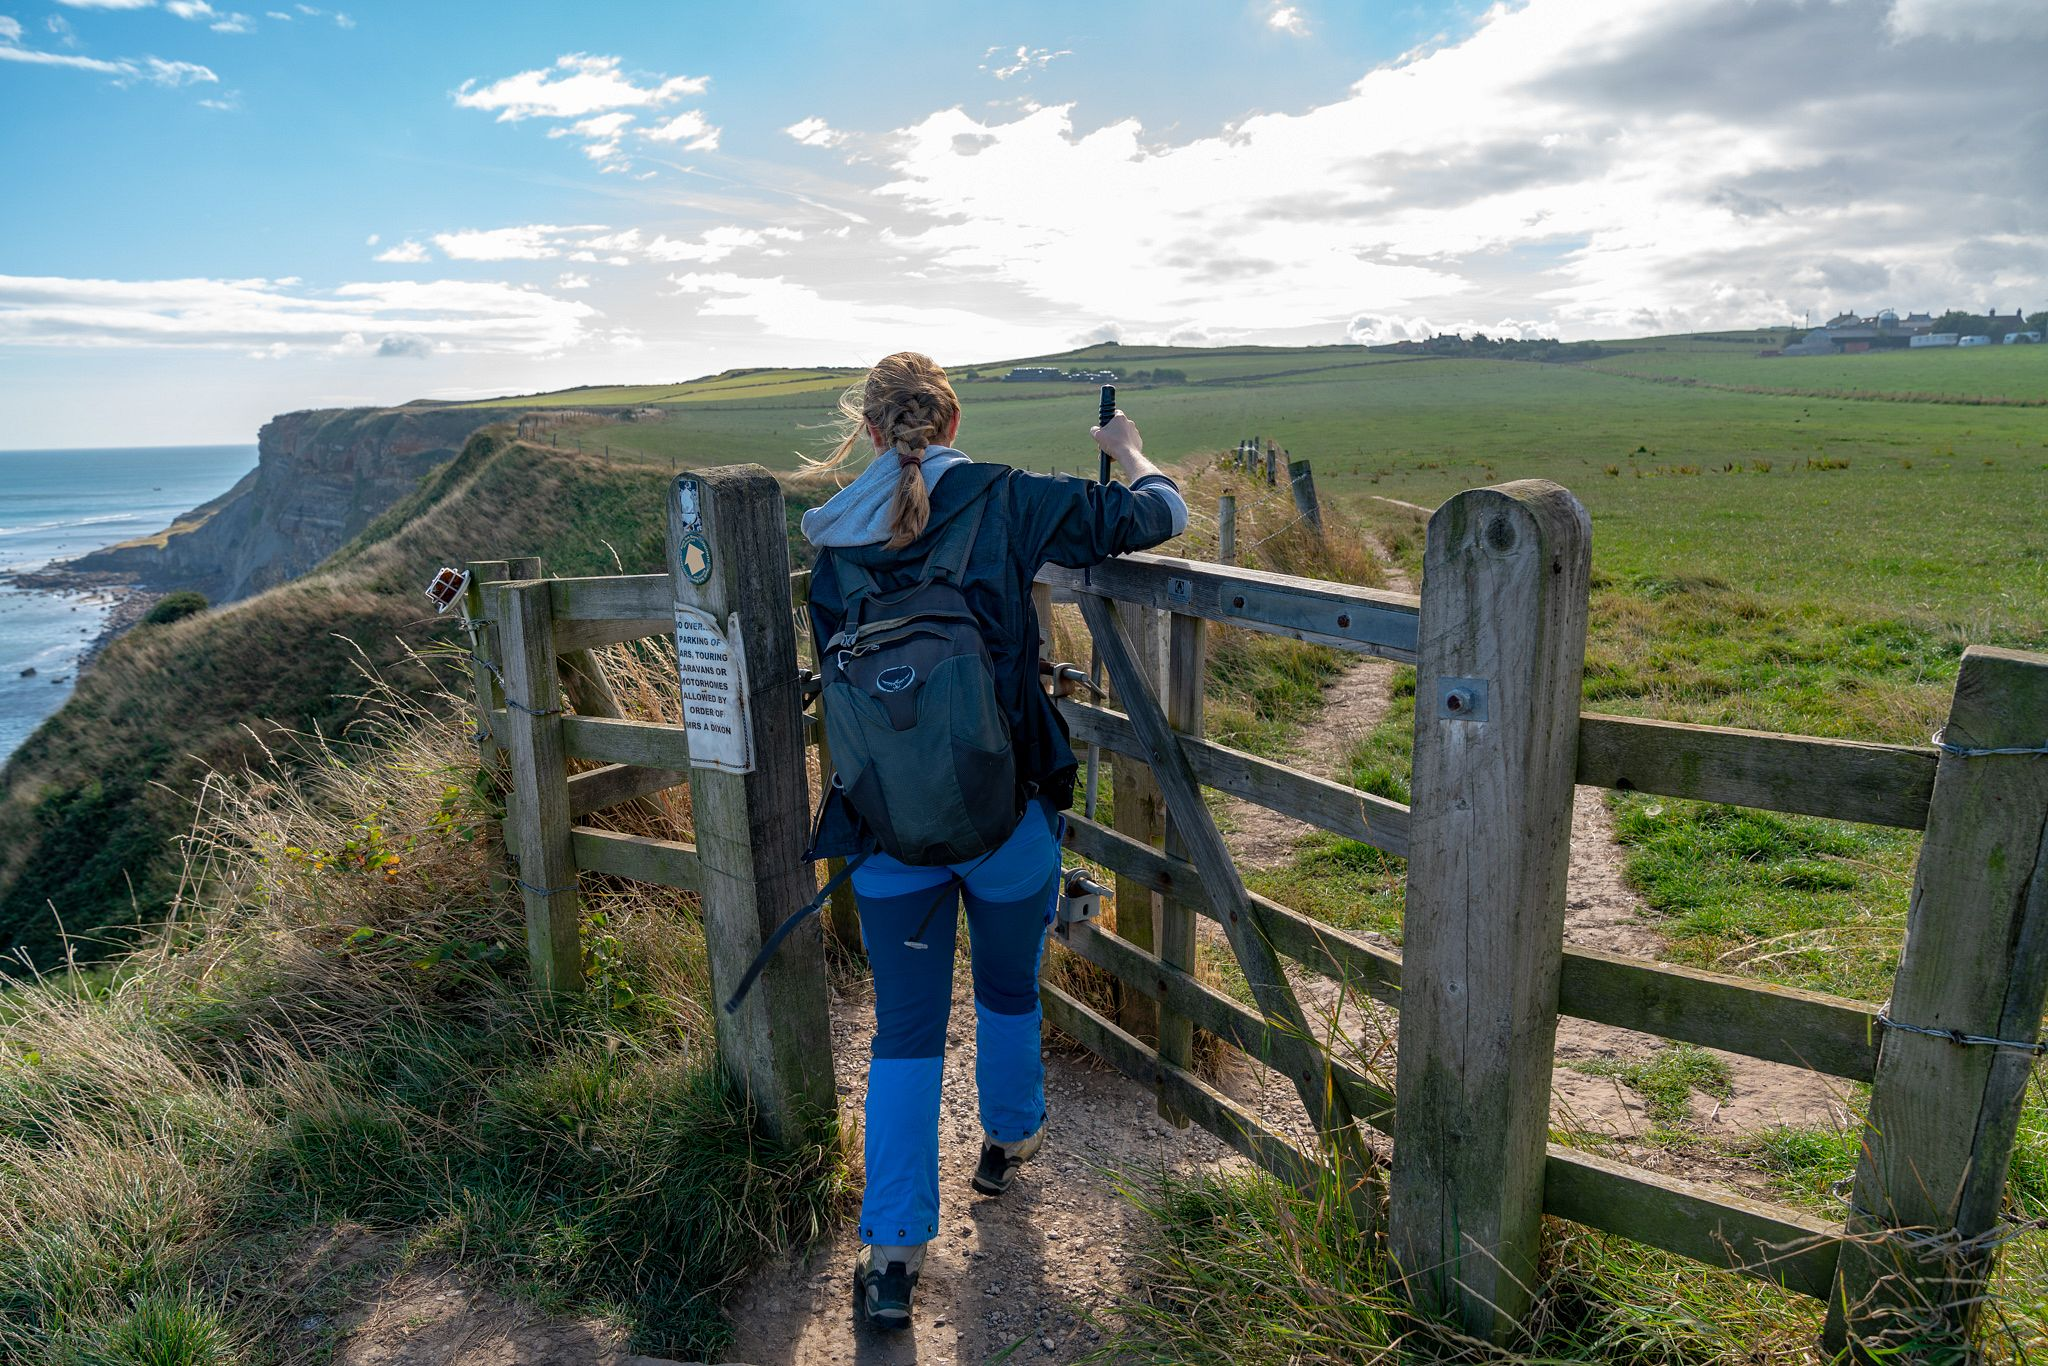 Hiking the Cleveland Way